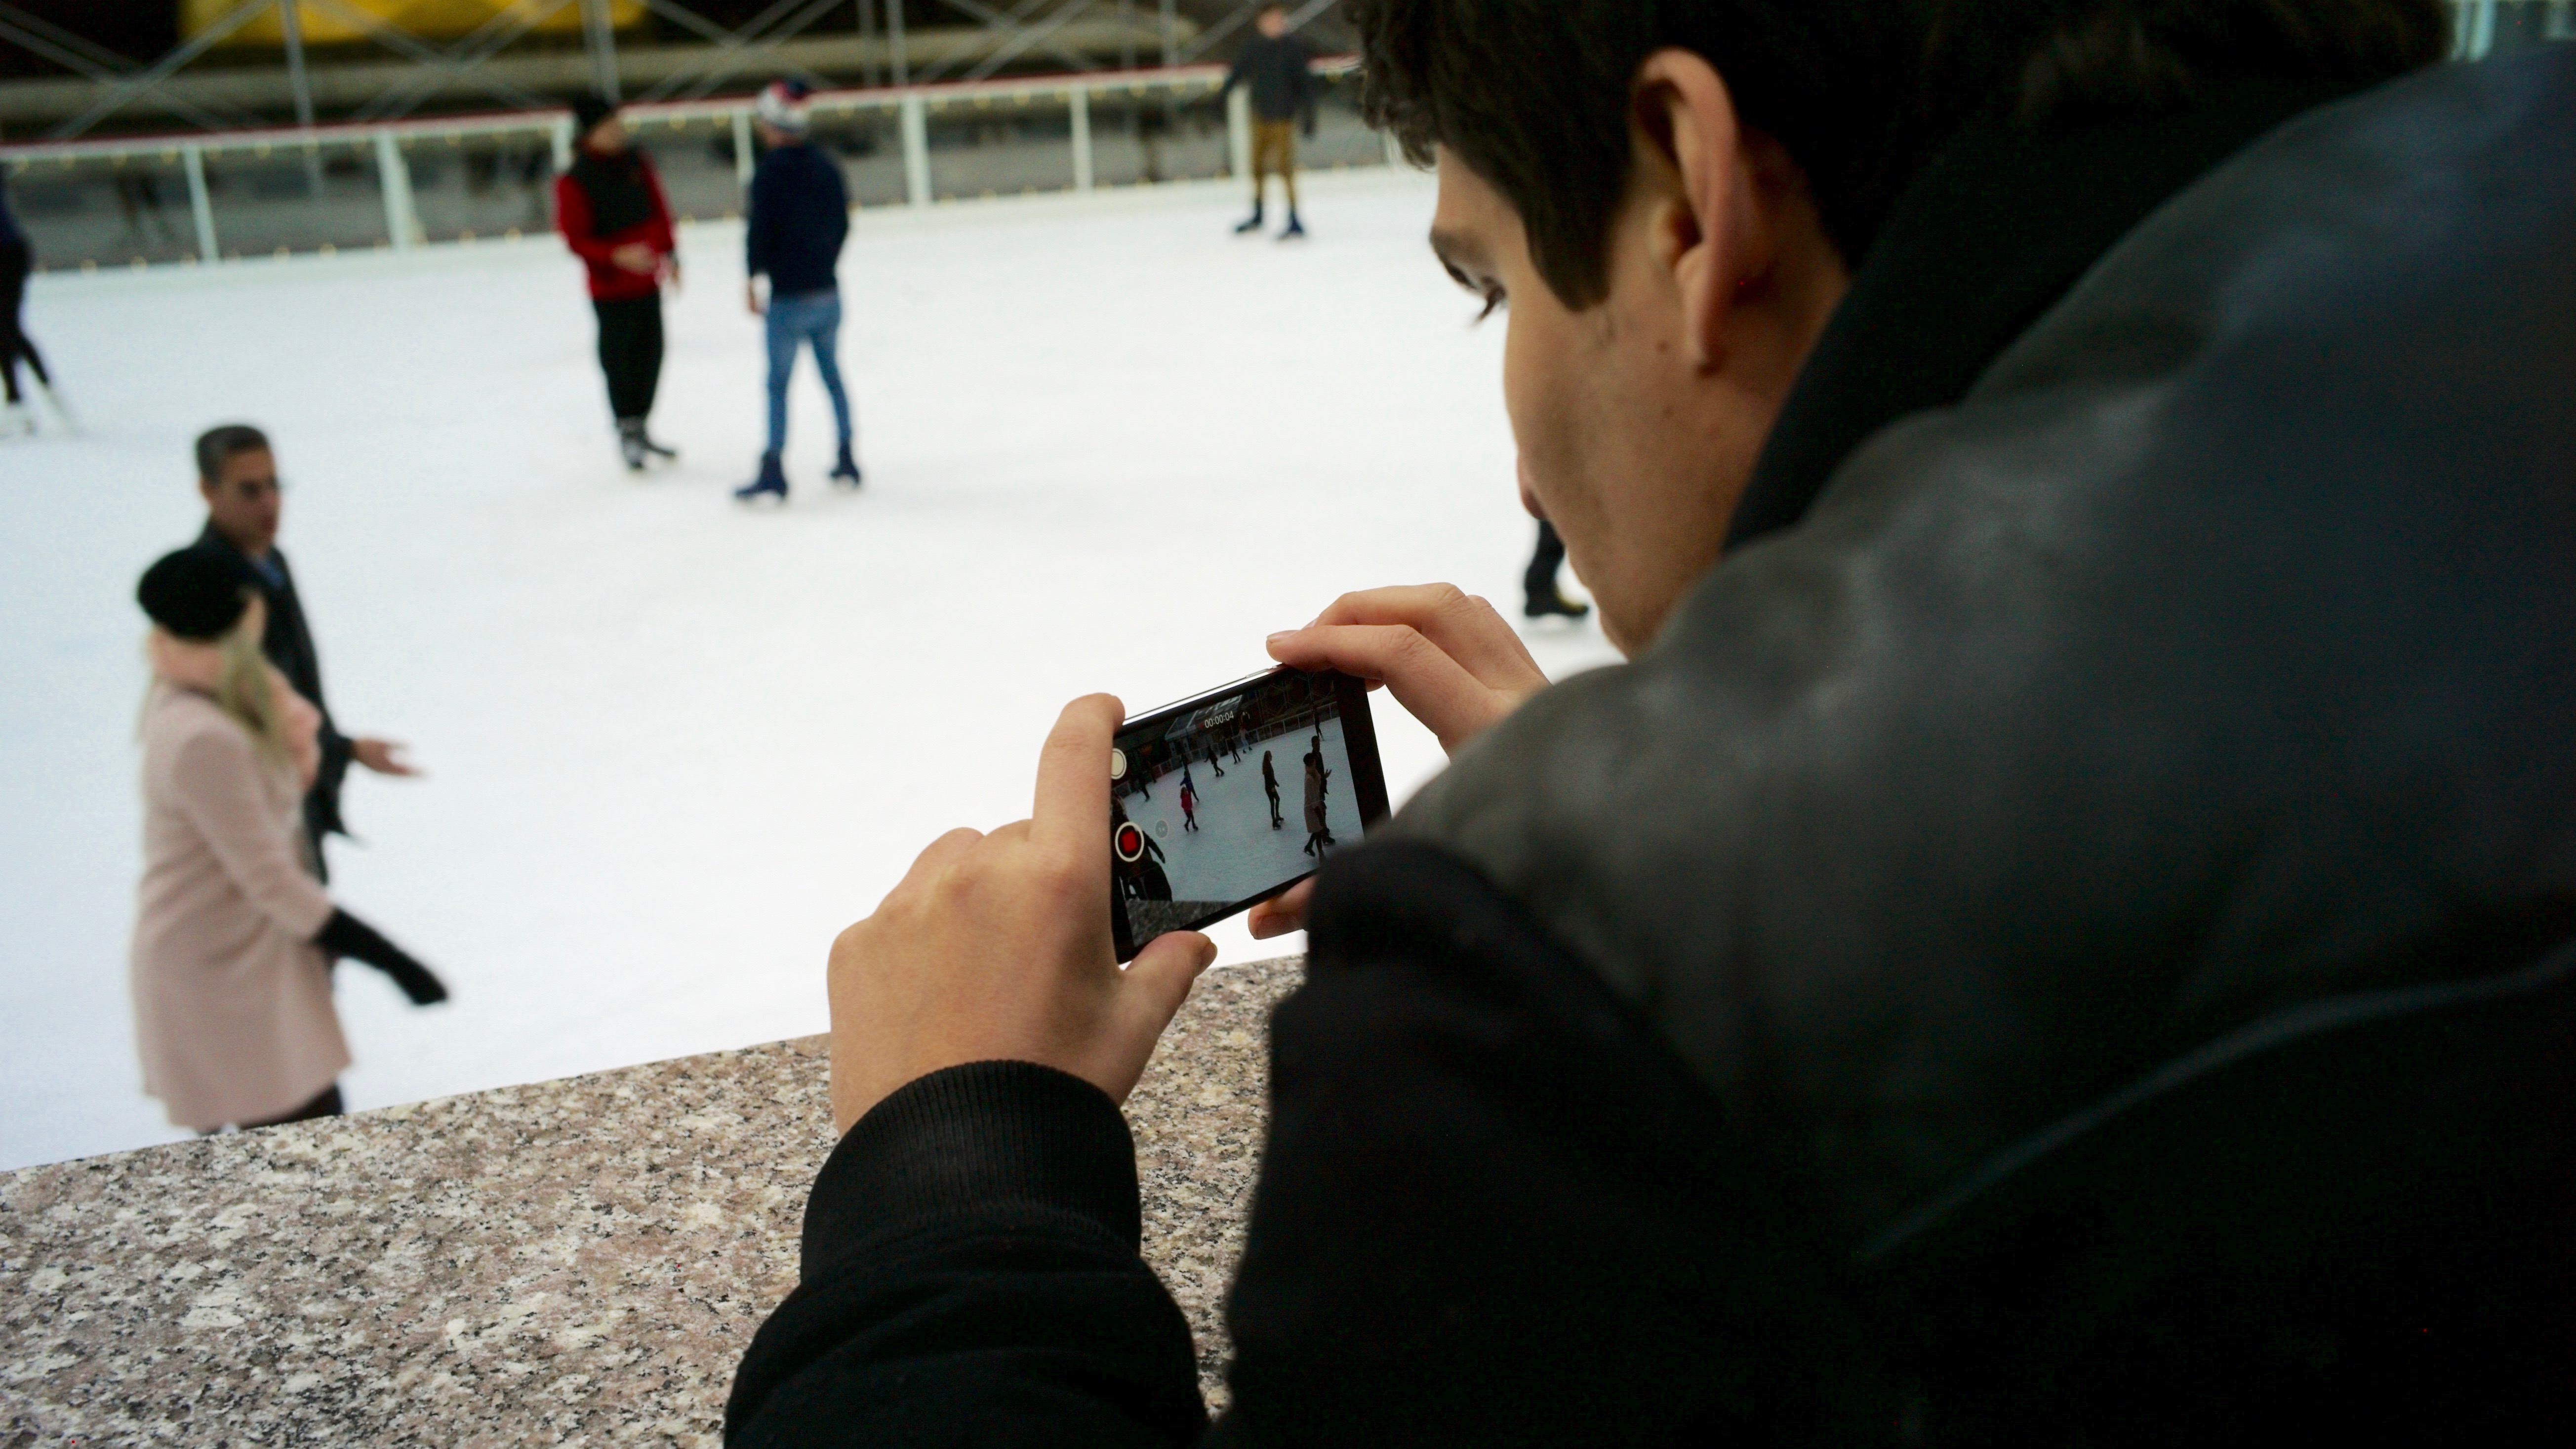 Filming Video on an iPhone